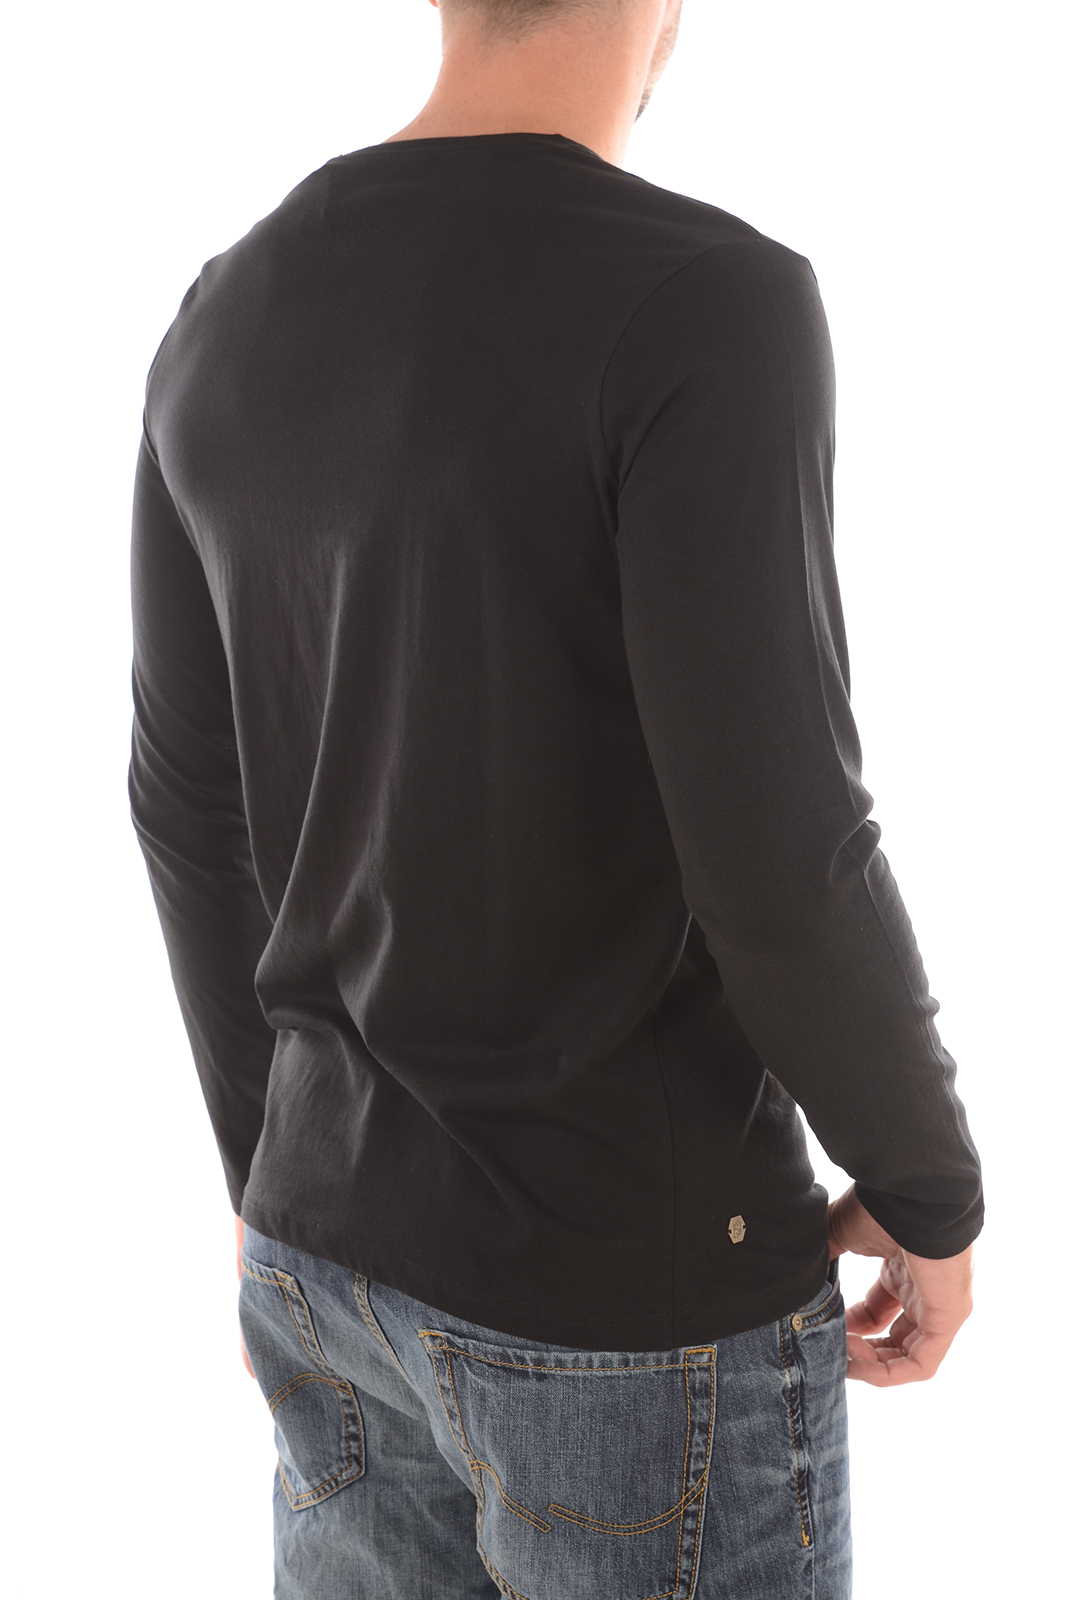 Tee-shirts  Biaggio jeans LEABELA NOIR